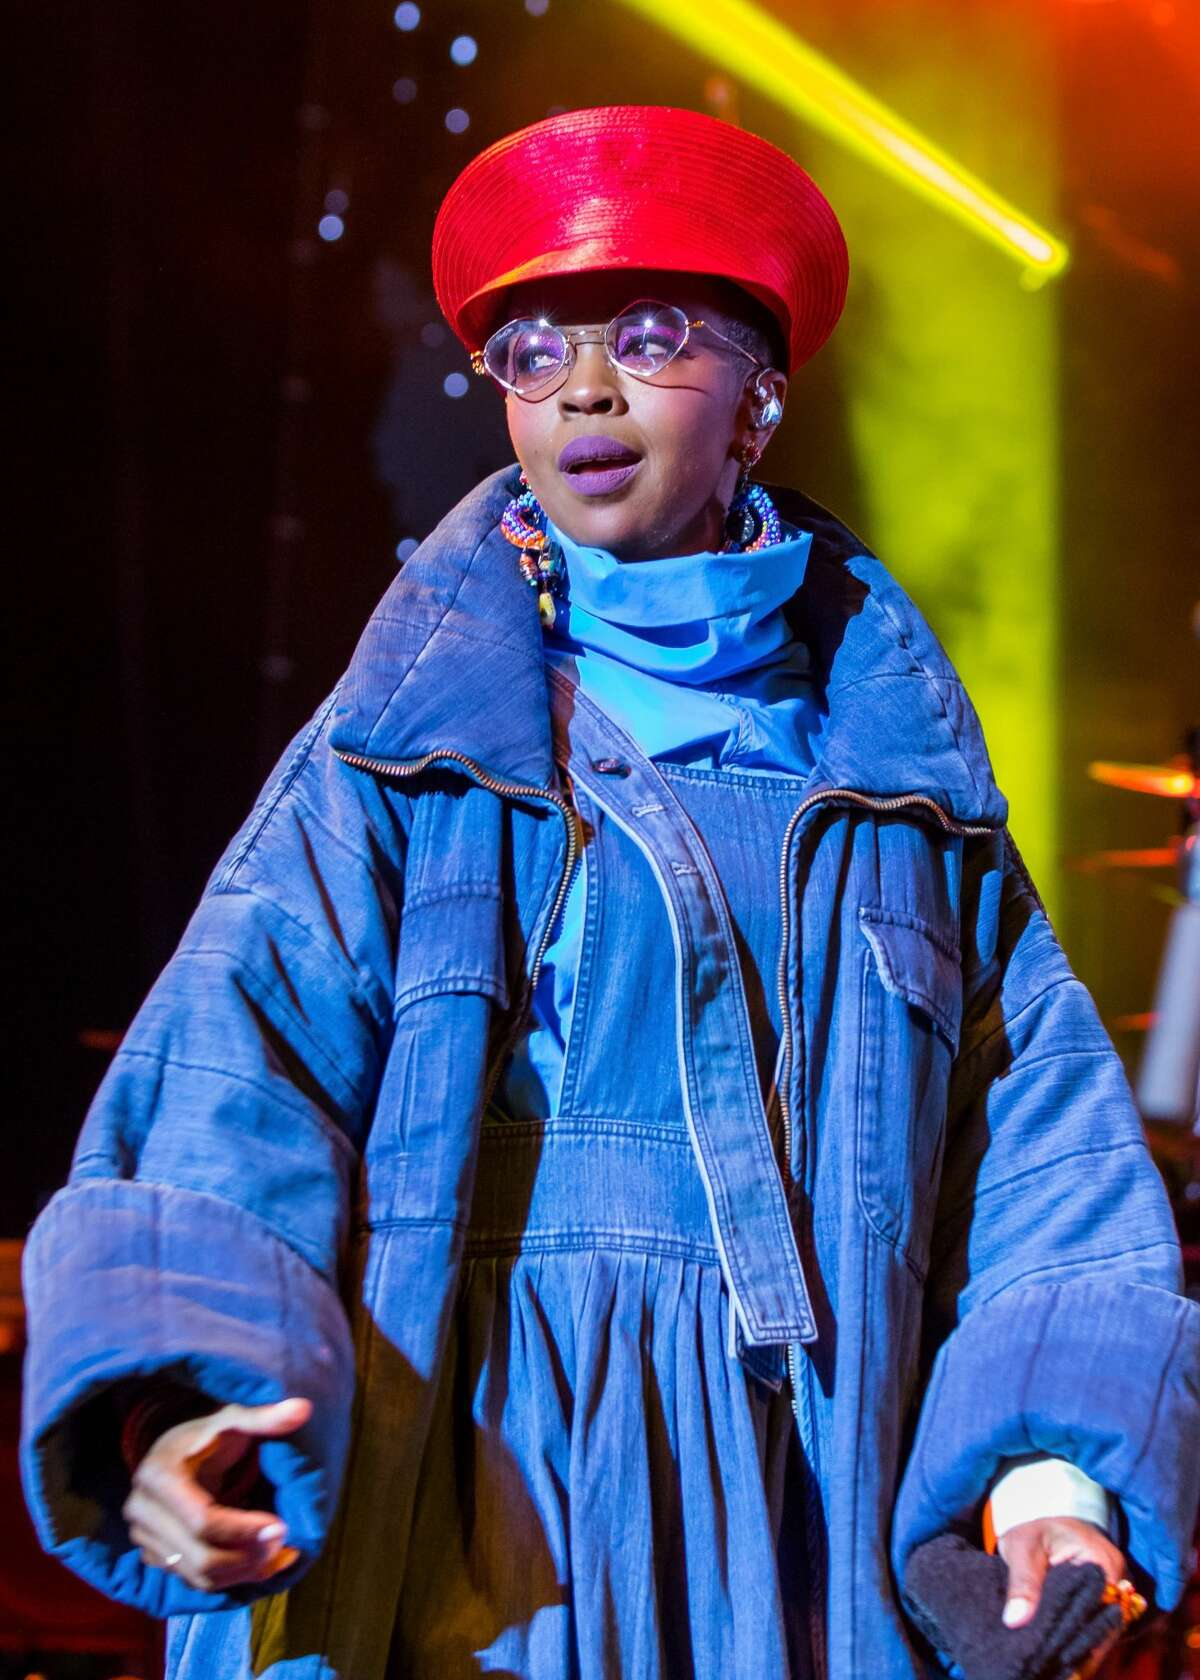 Ms. Lauryn Hill:The singer will be performing at the Smart Financial Centre on Wednesday, Sept. 27 at 7 p.m. More Details: www.smartfinancialcentre.net